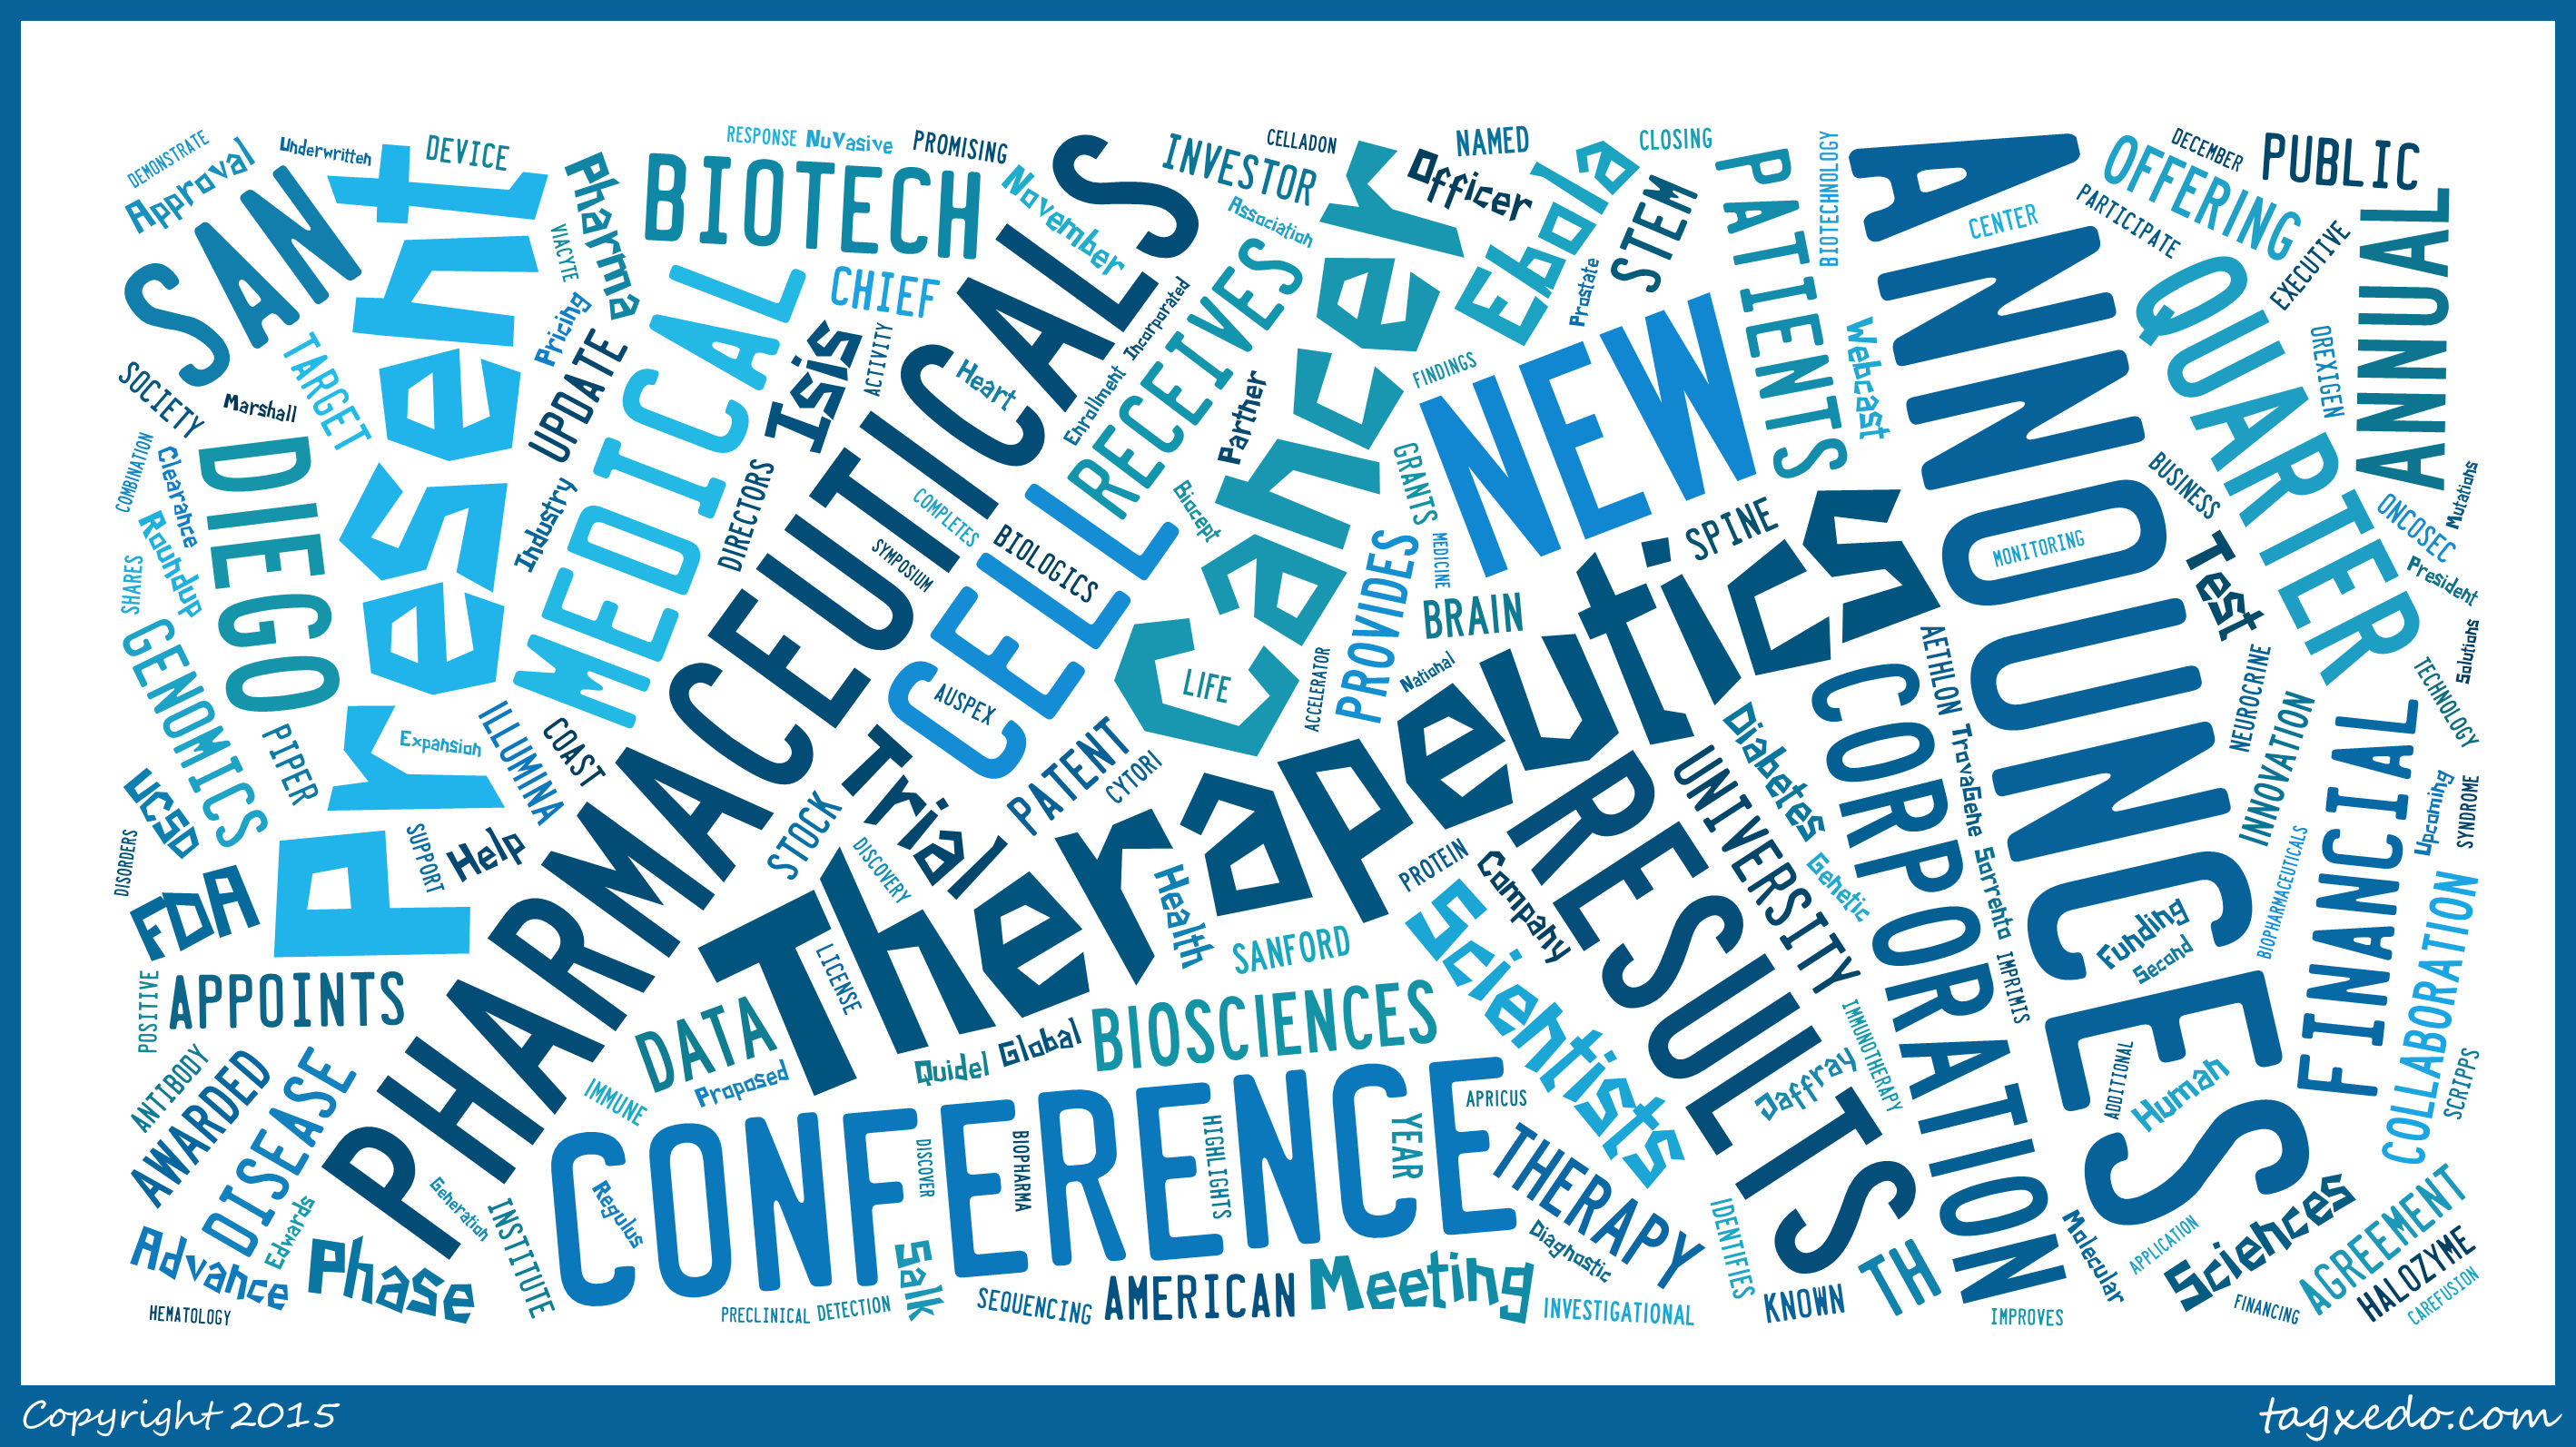 Life Science Public Relations Guidelines Top 5 Words To Leave Out Of Press Release Titles